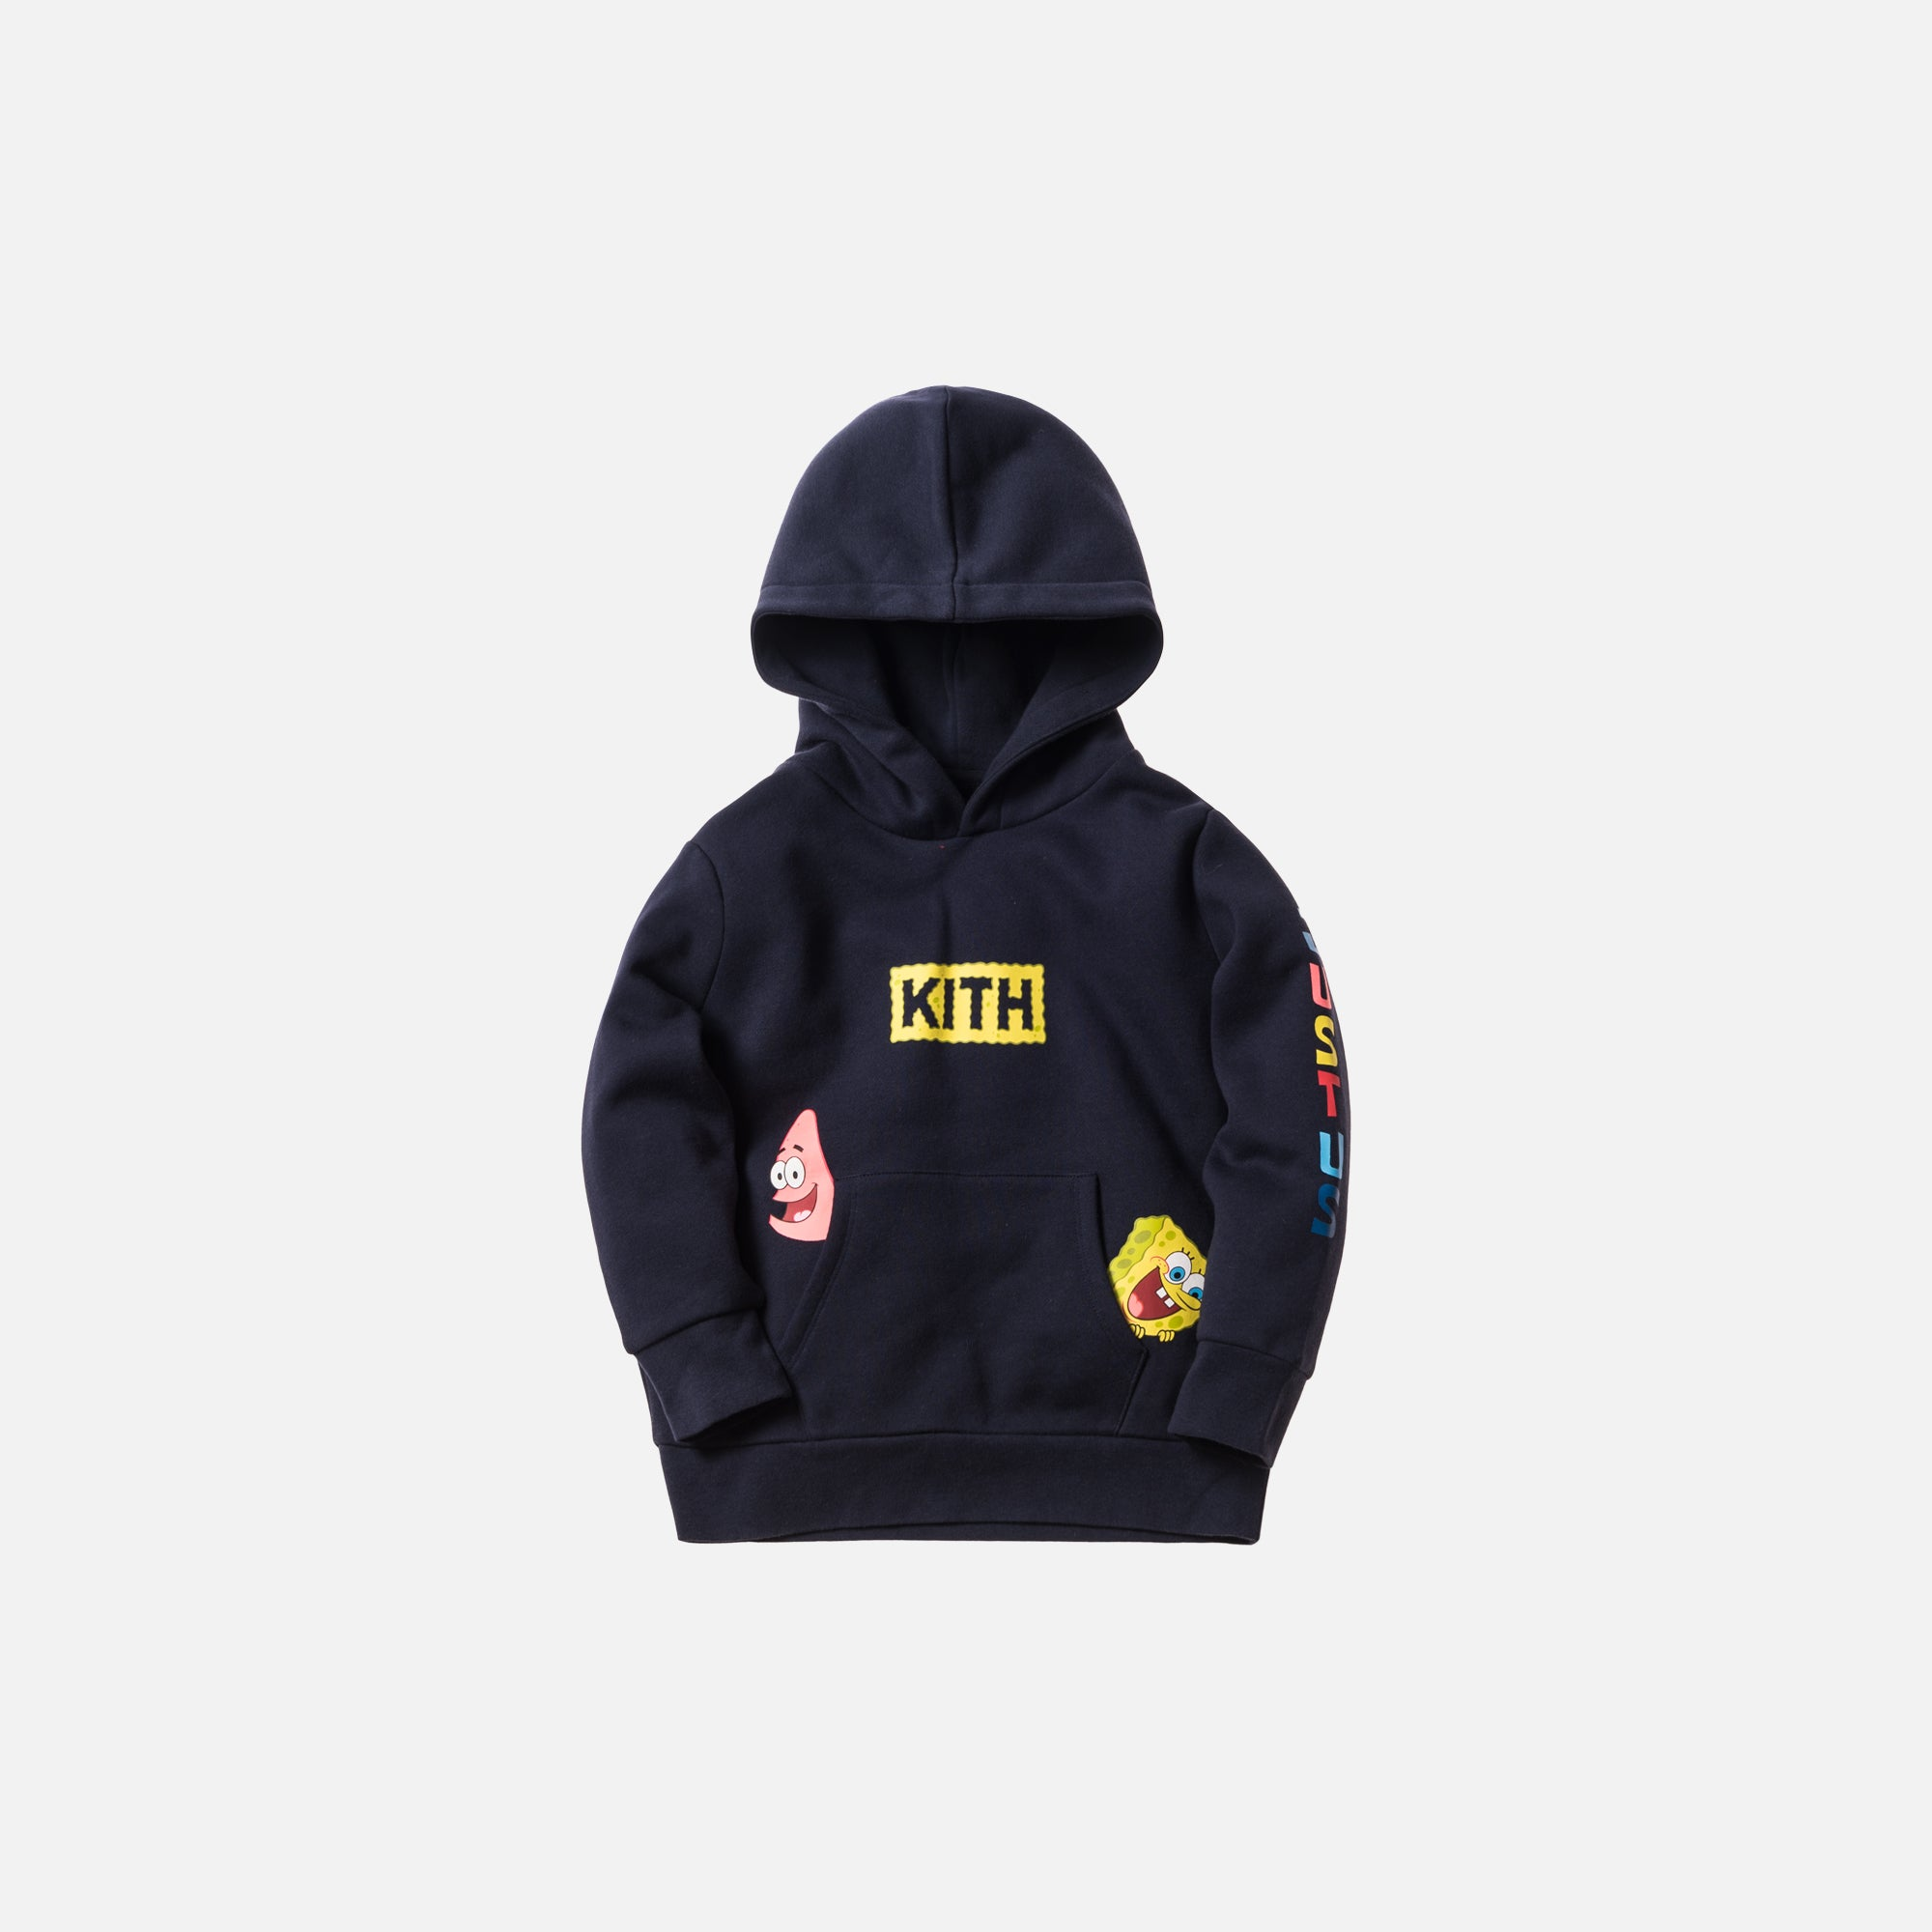 Kith Kids x SpongeBob Just Us Hoodie - Navy